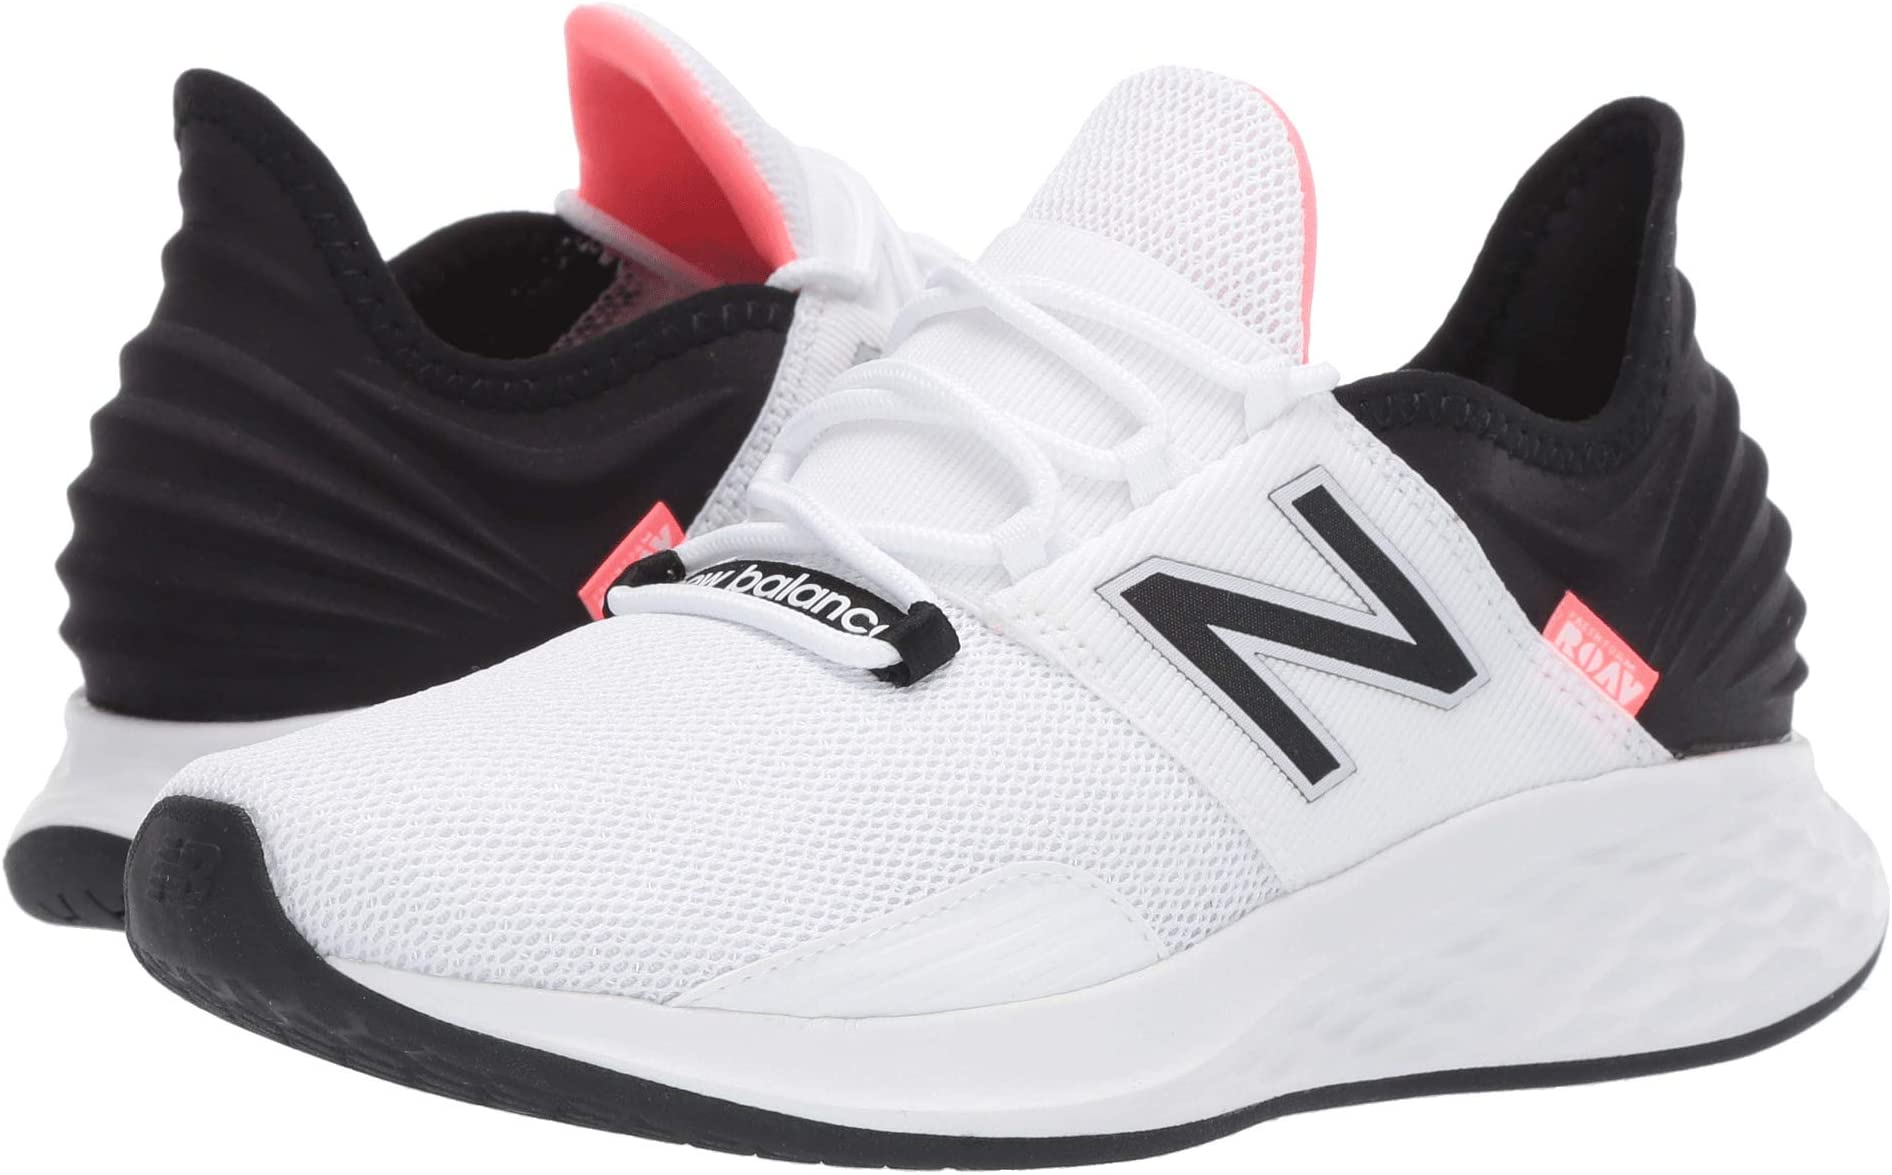 1d24de2b87 New Balance Shoes, Clothing, Accessories and More | Zappos.com